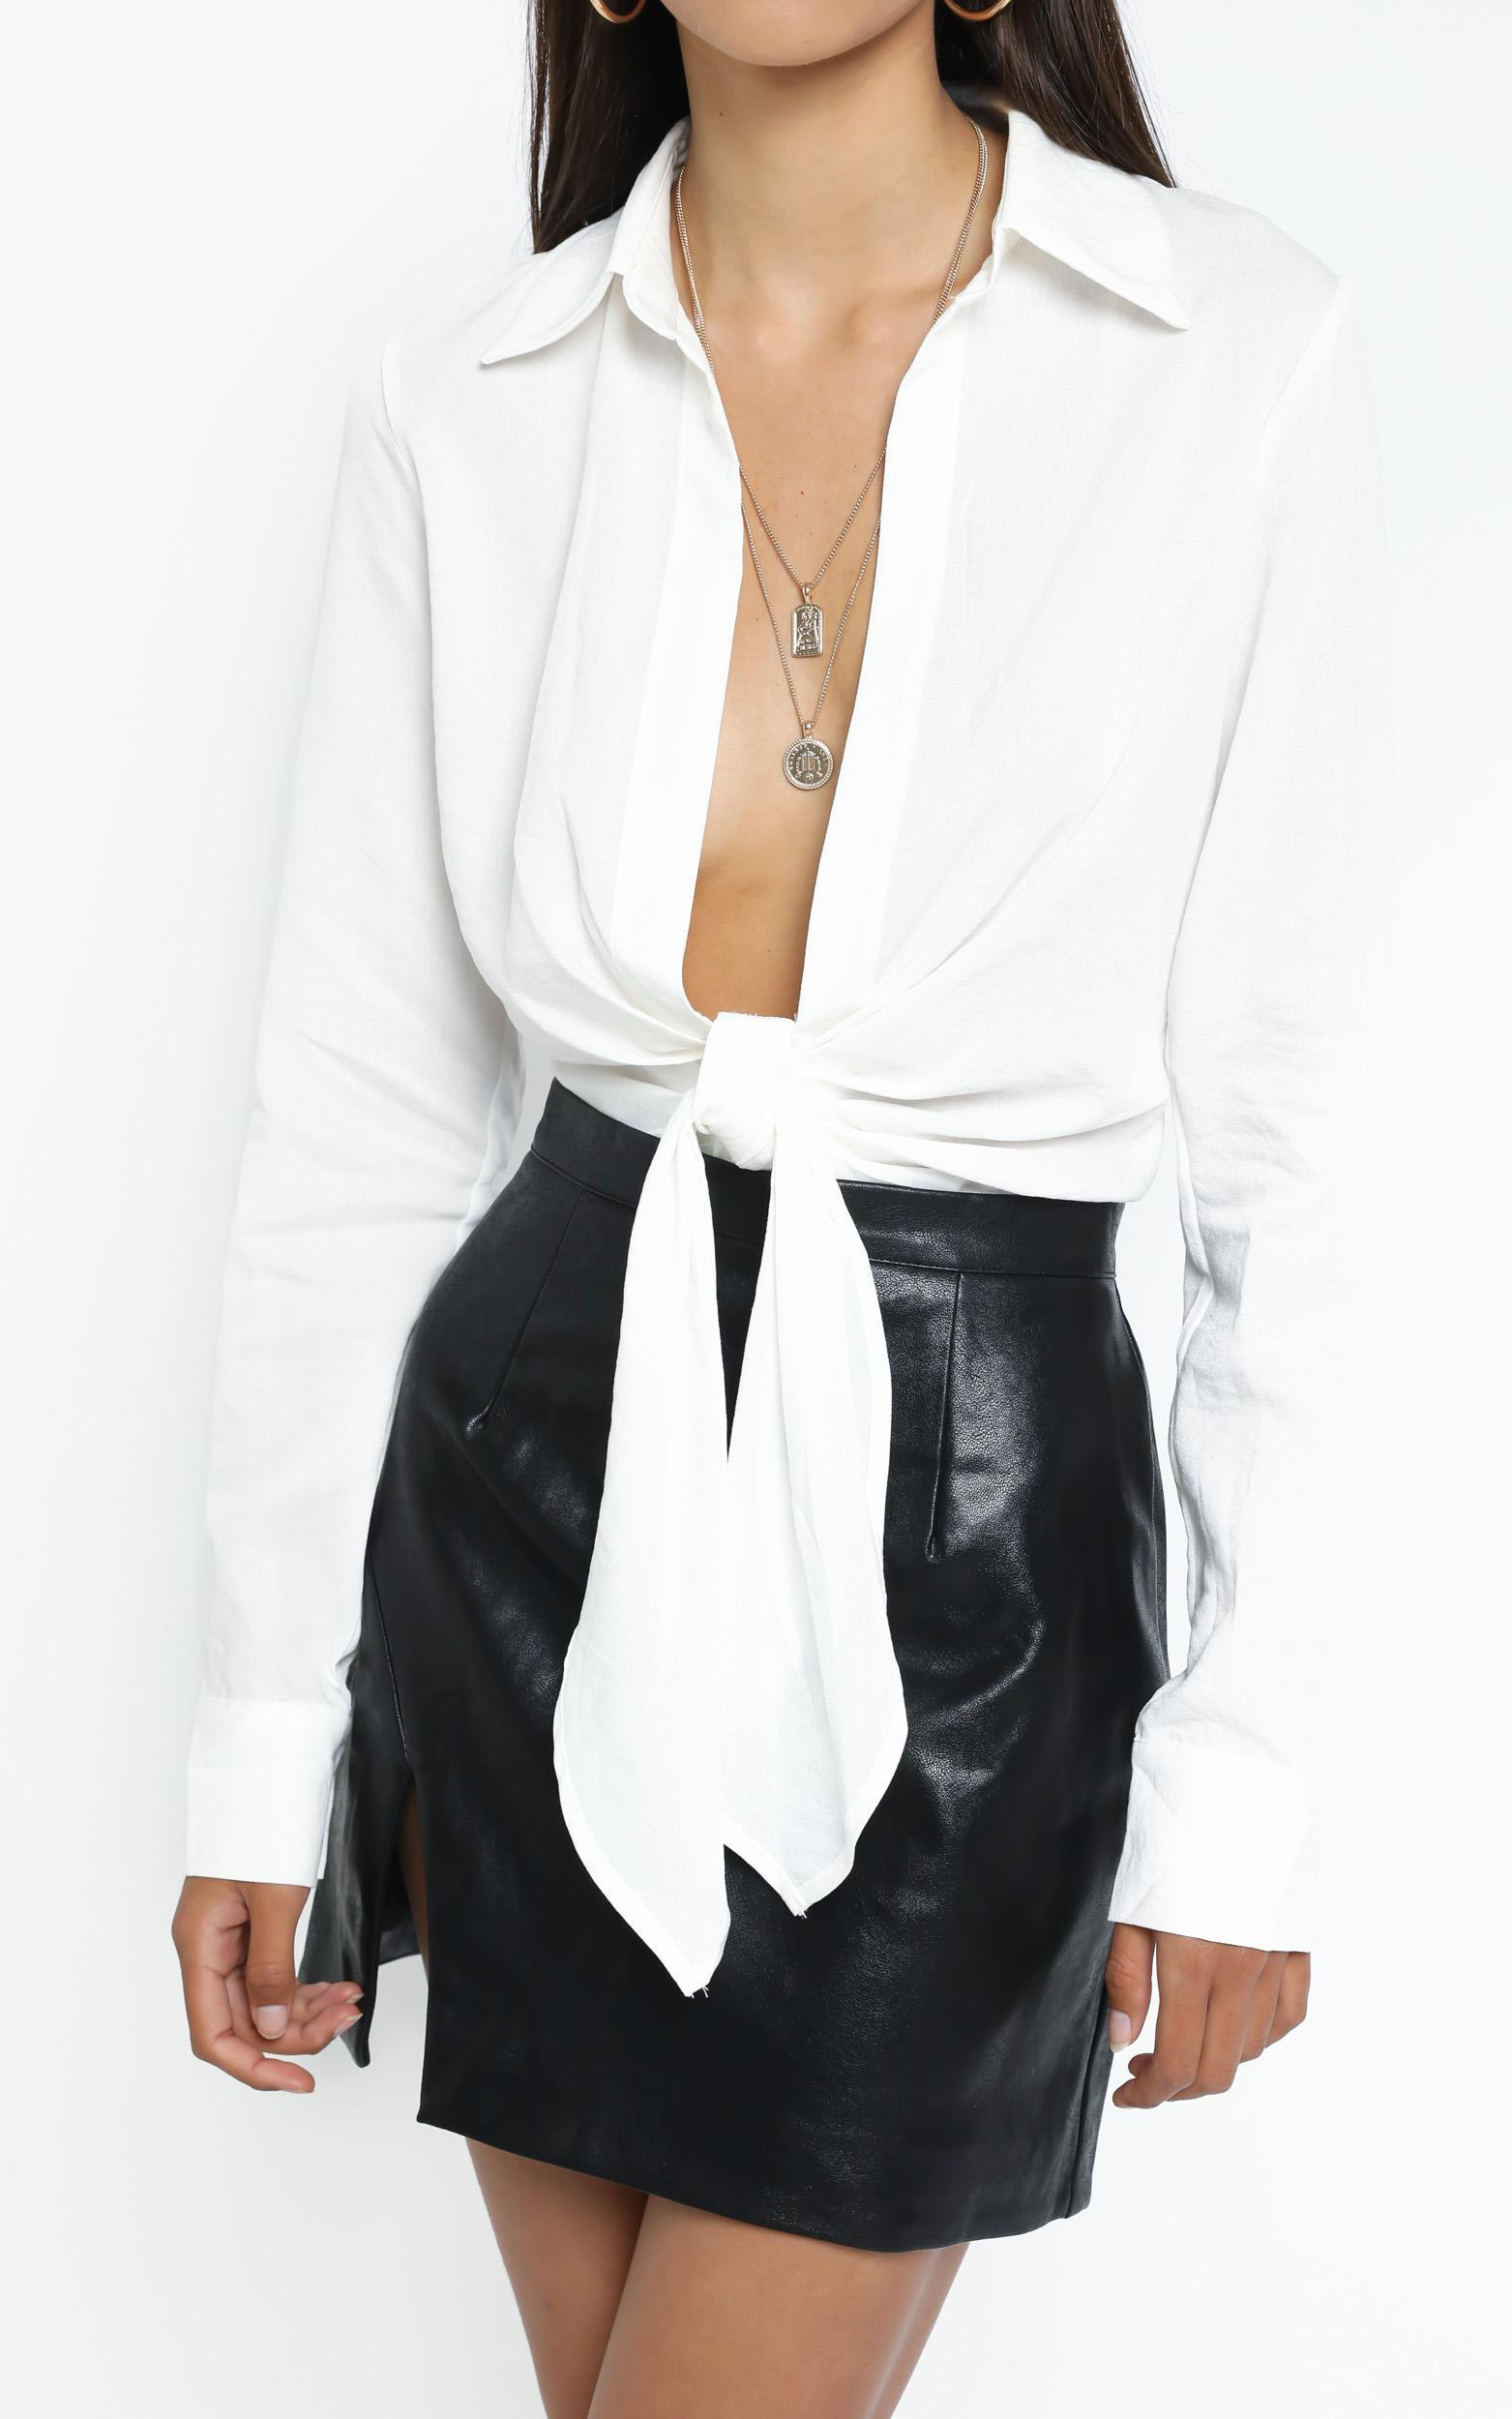 Monroe Tie Top in White - 12 (L), White, hi-res image number null